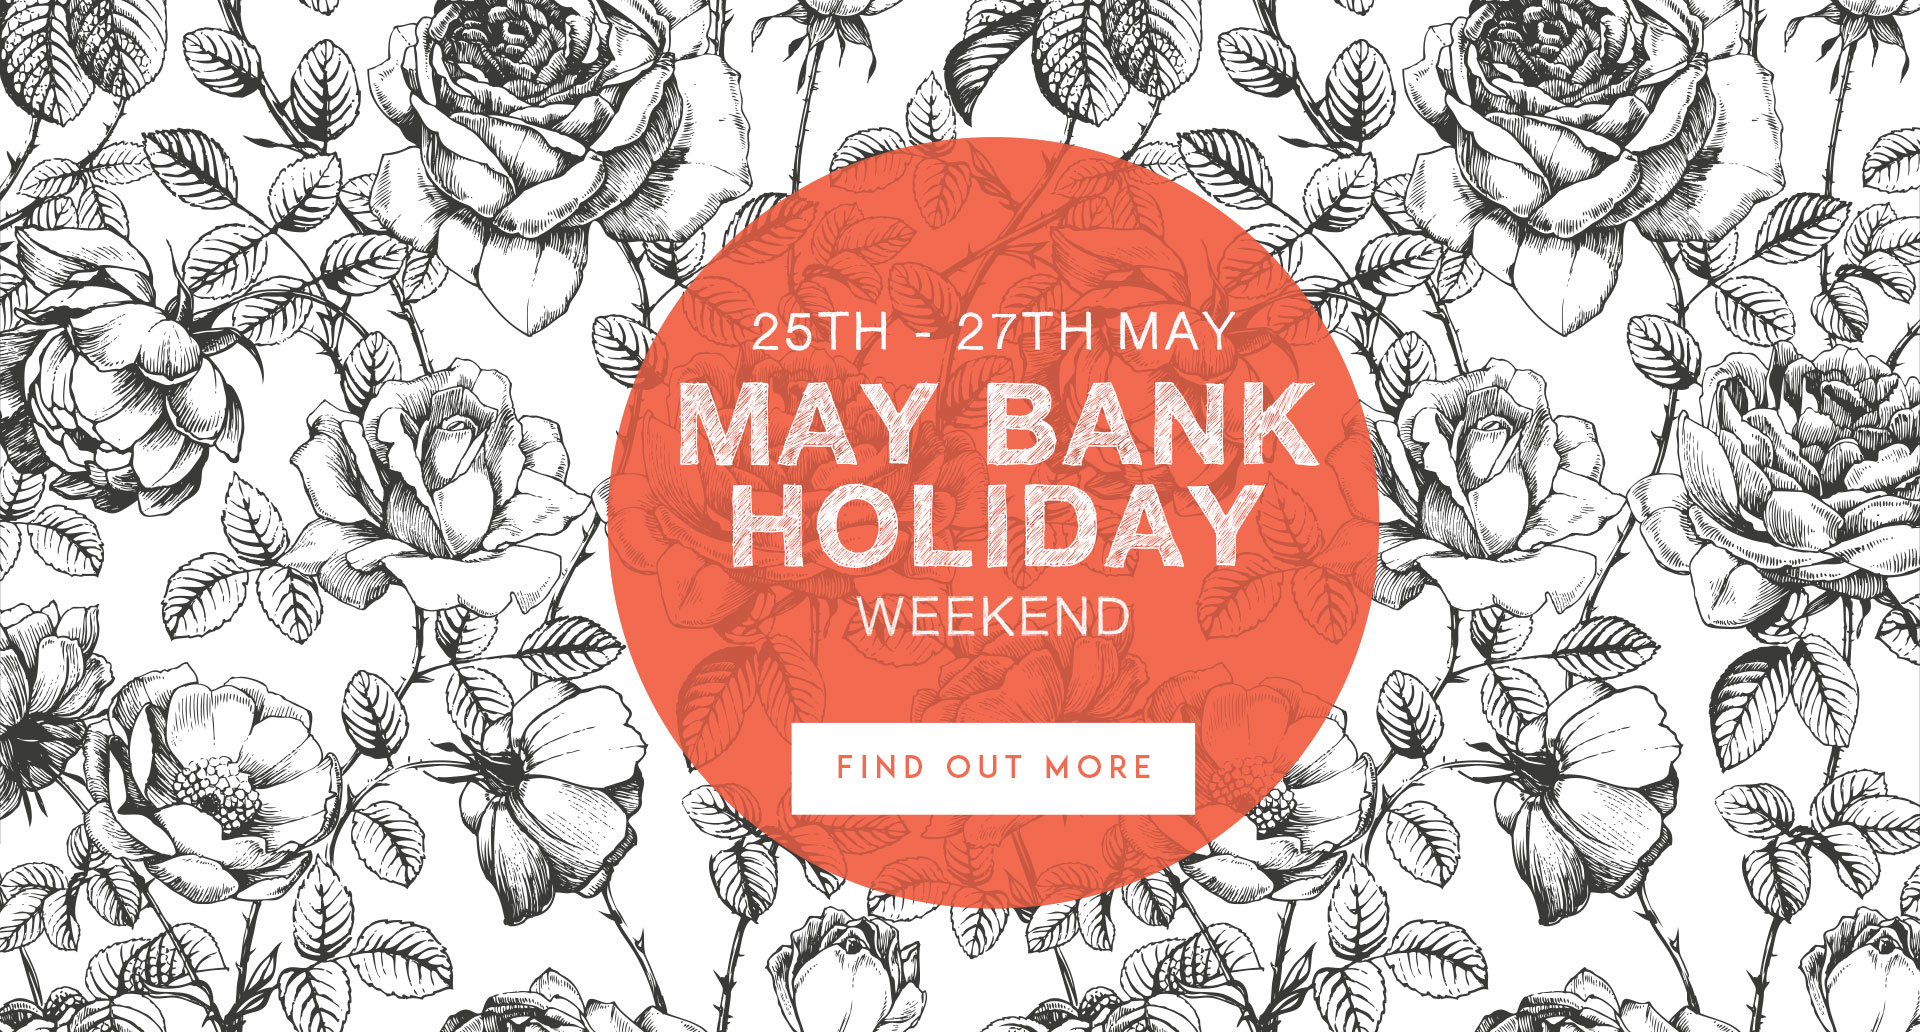 May Bank Holiday at The Prince of Wales Feathers